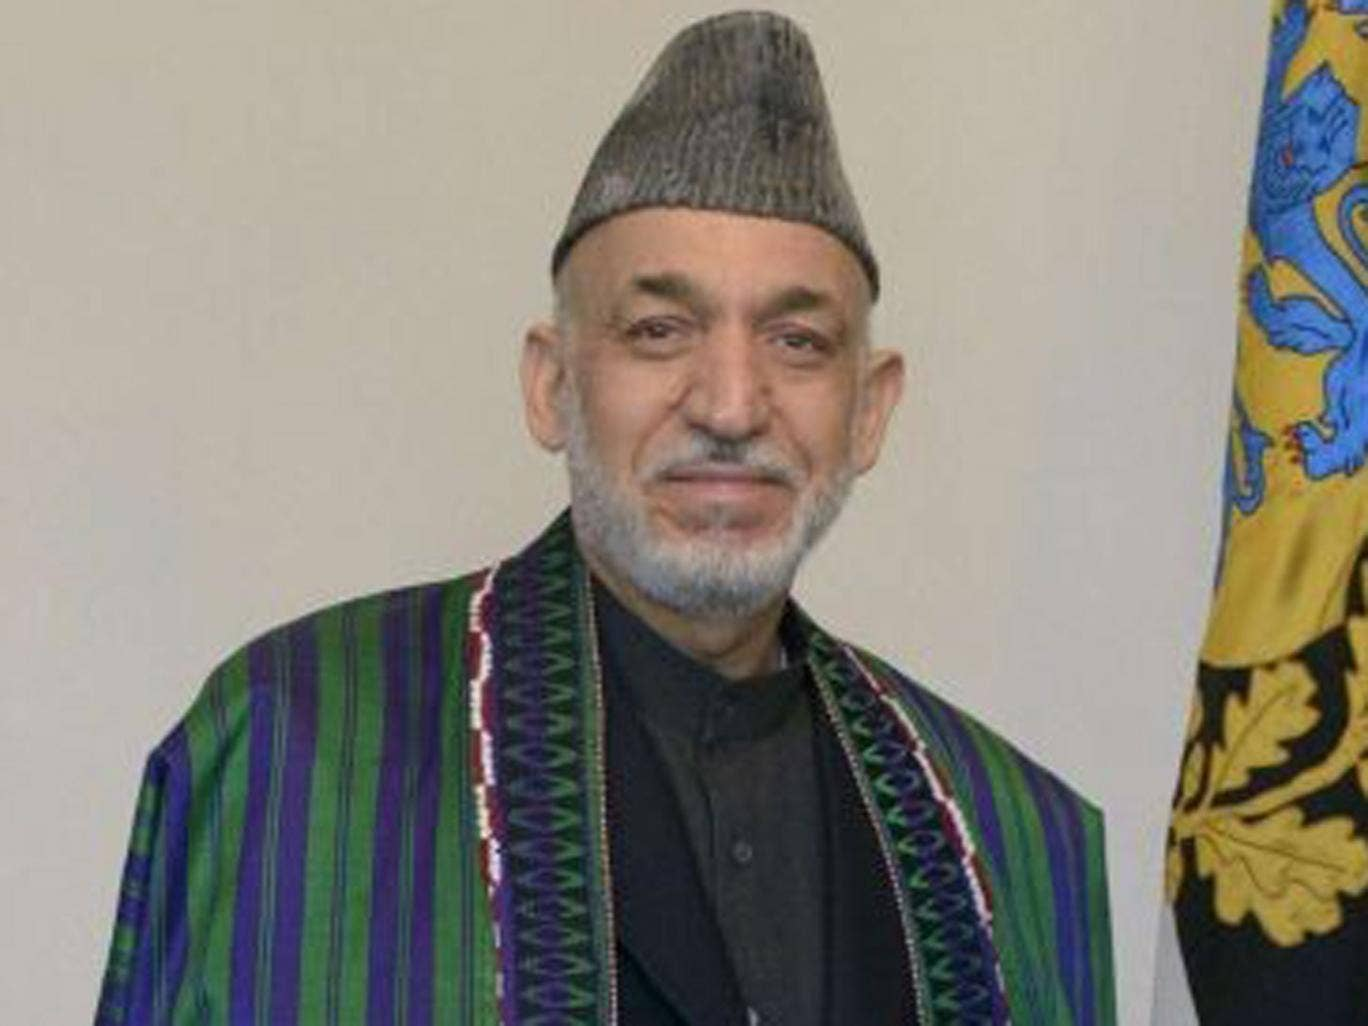 Hamid Karzai has pressed for the closure of the Guantanamo Bay prison